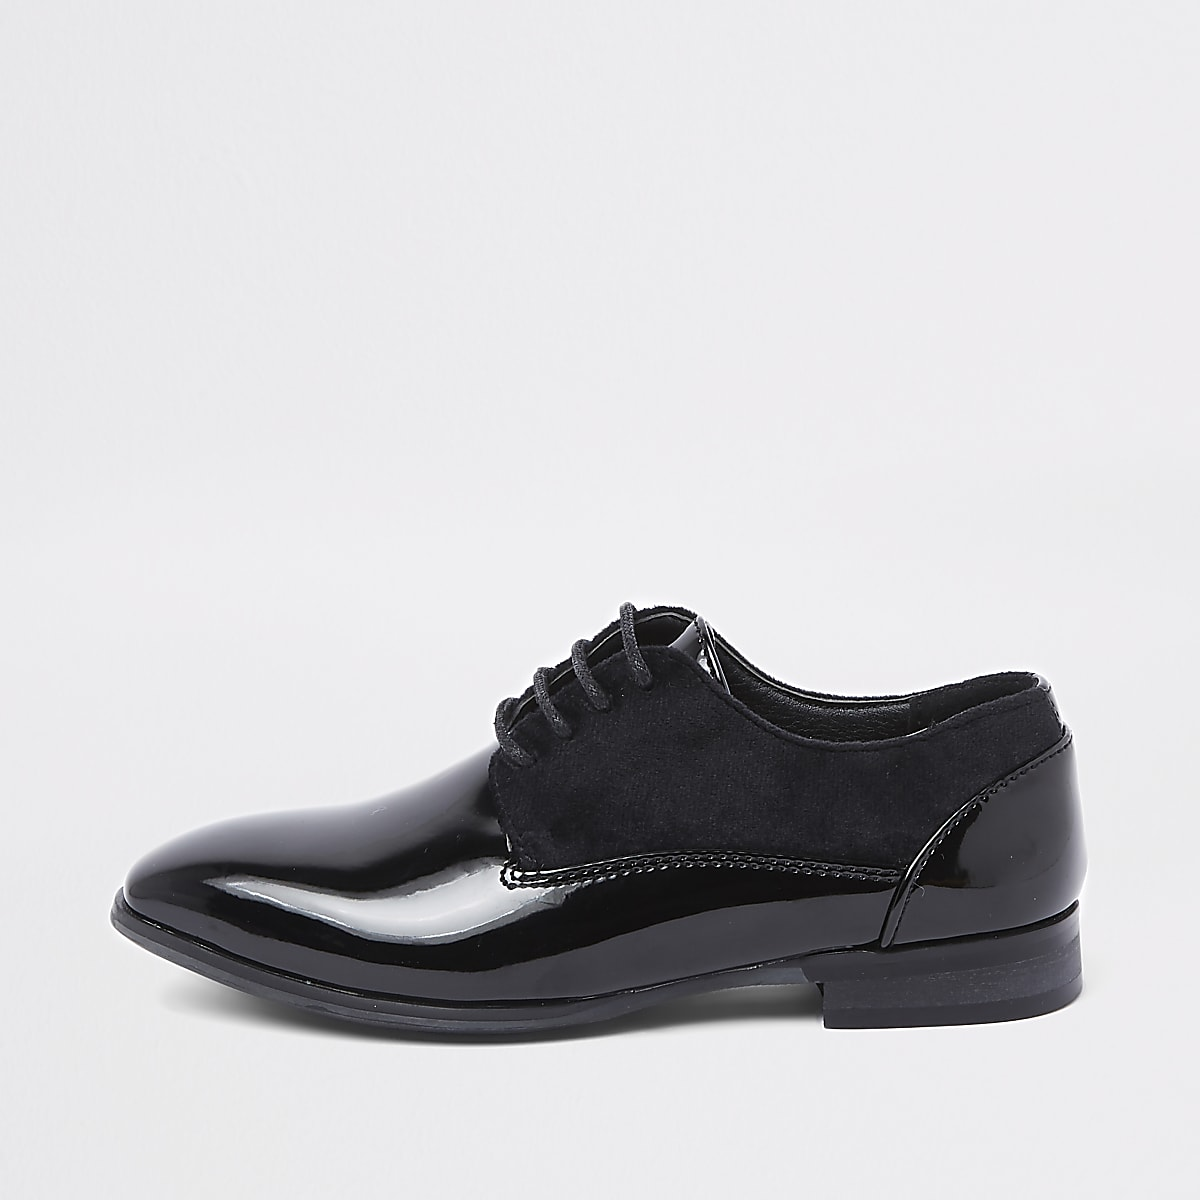 Boys black suede trim patent shoes